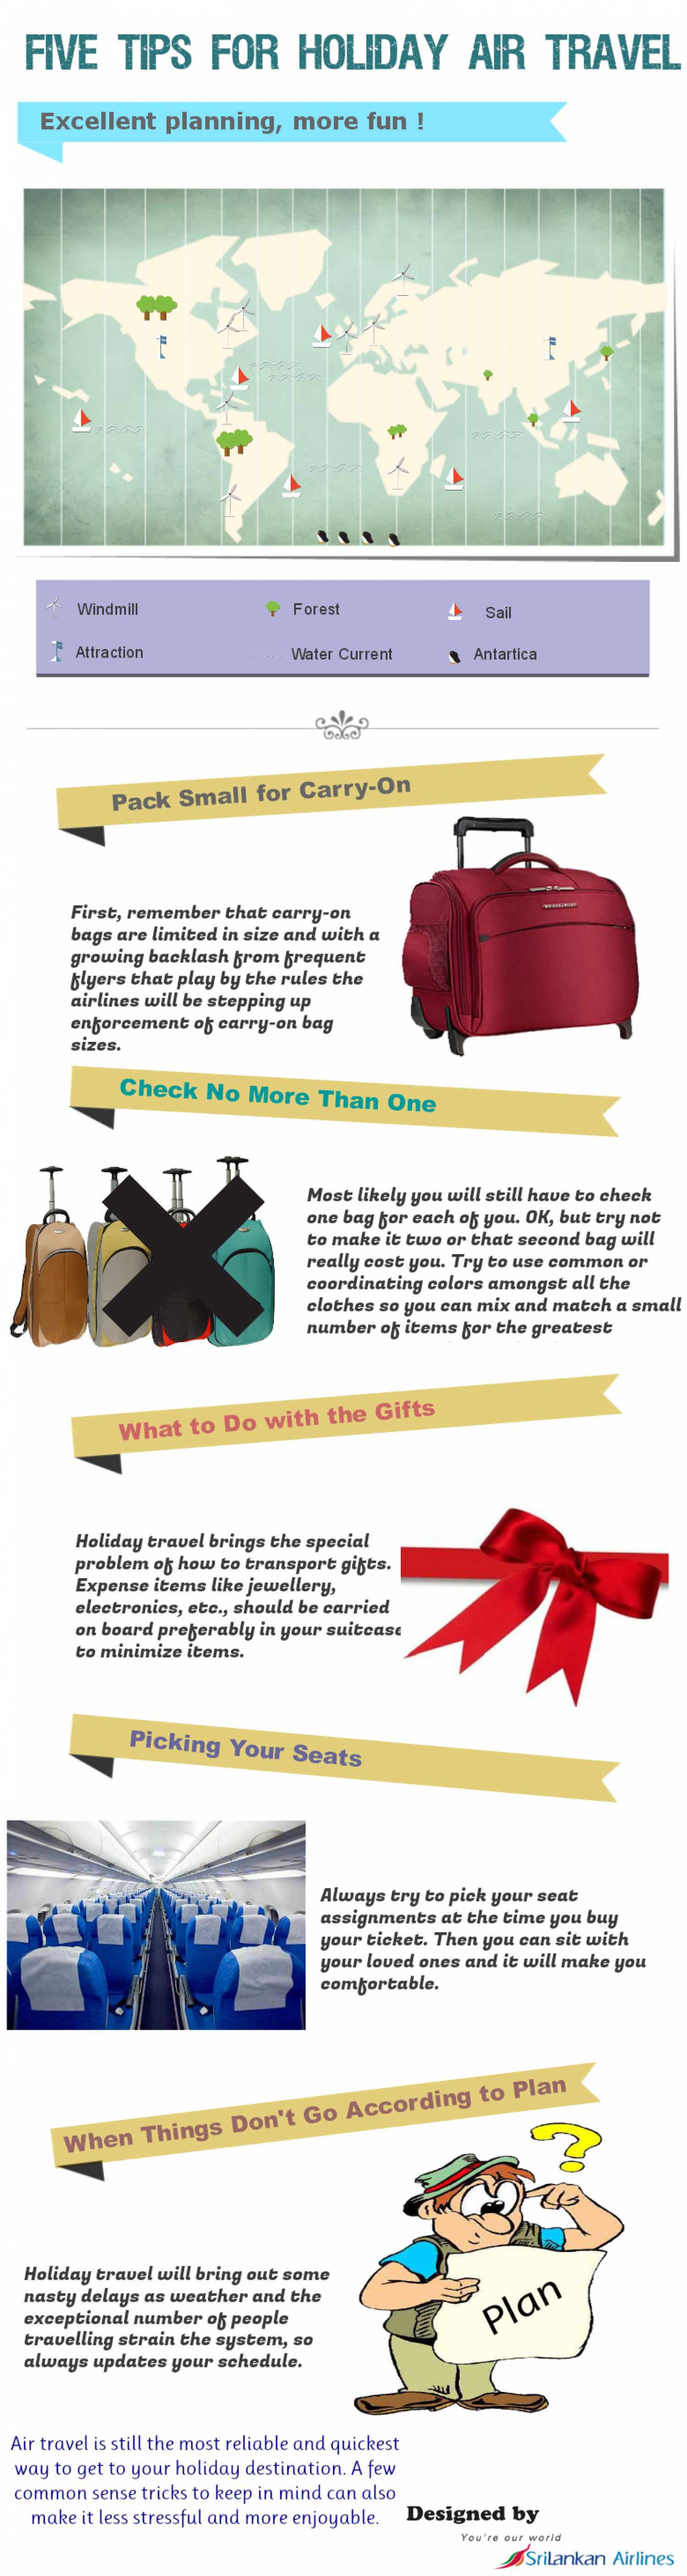 Five Tips for Holiday Air Travel Infographic